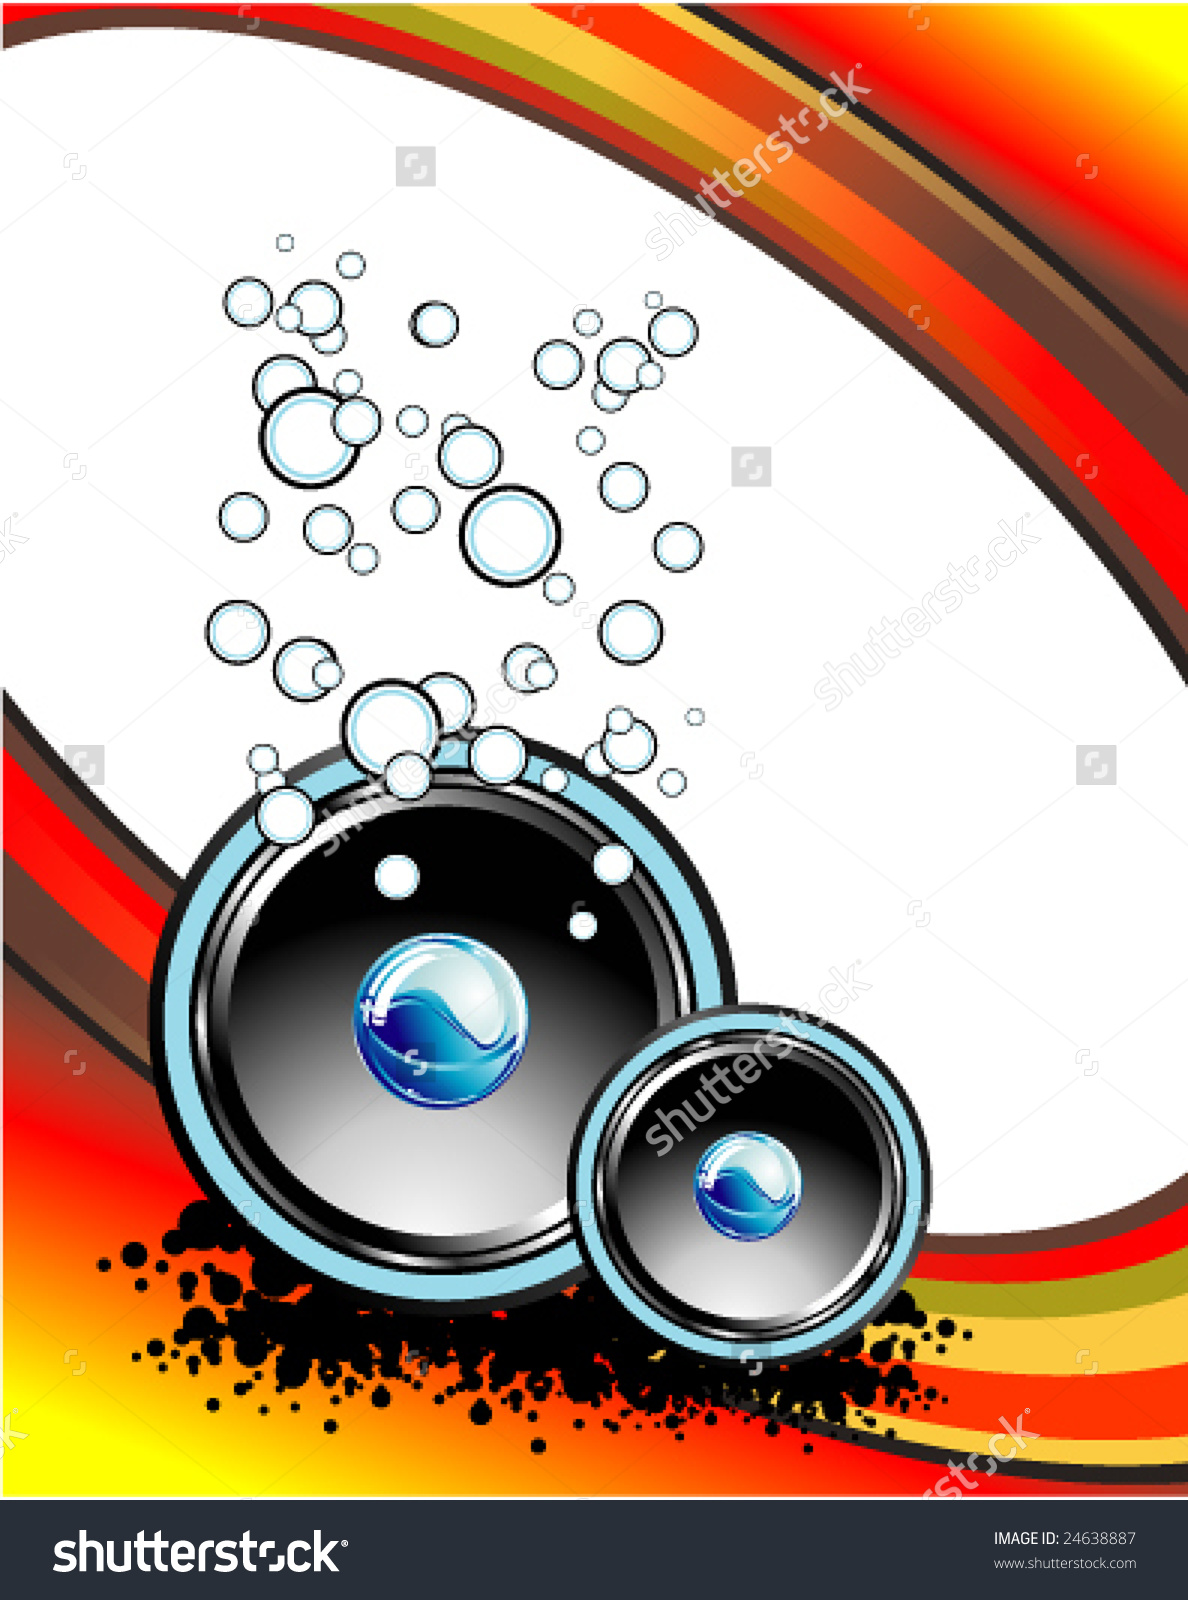 Vector Abstract Music Business Card With Fantasy Elements.